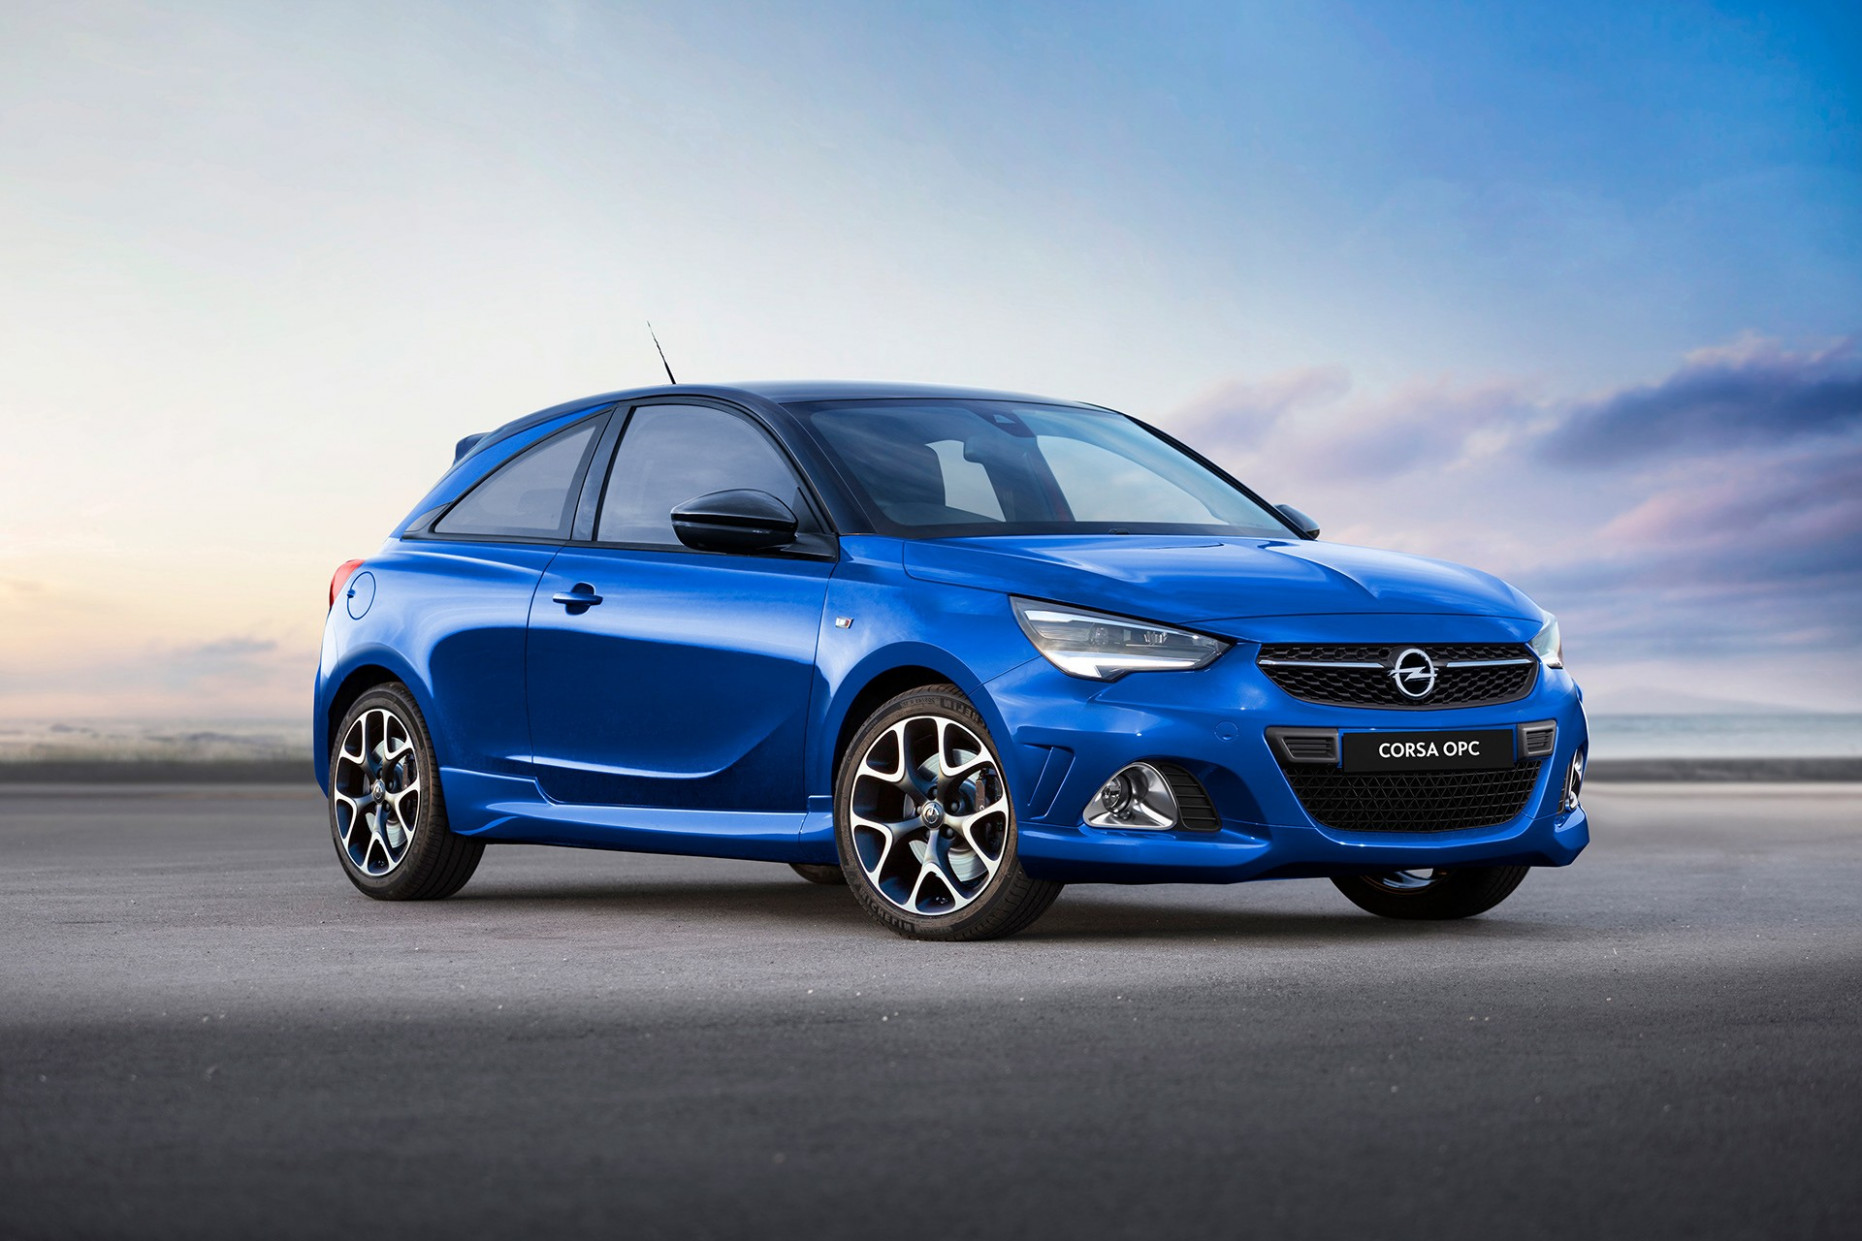 6 Opel Tigra OPC and Corsa OPC Rendered as Unlikely Hot ...